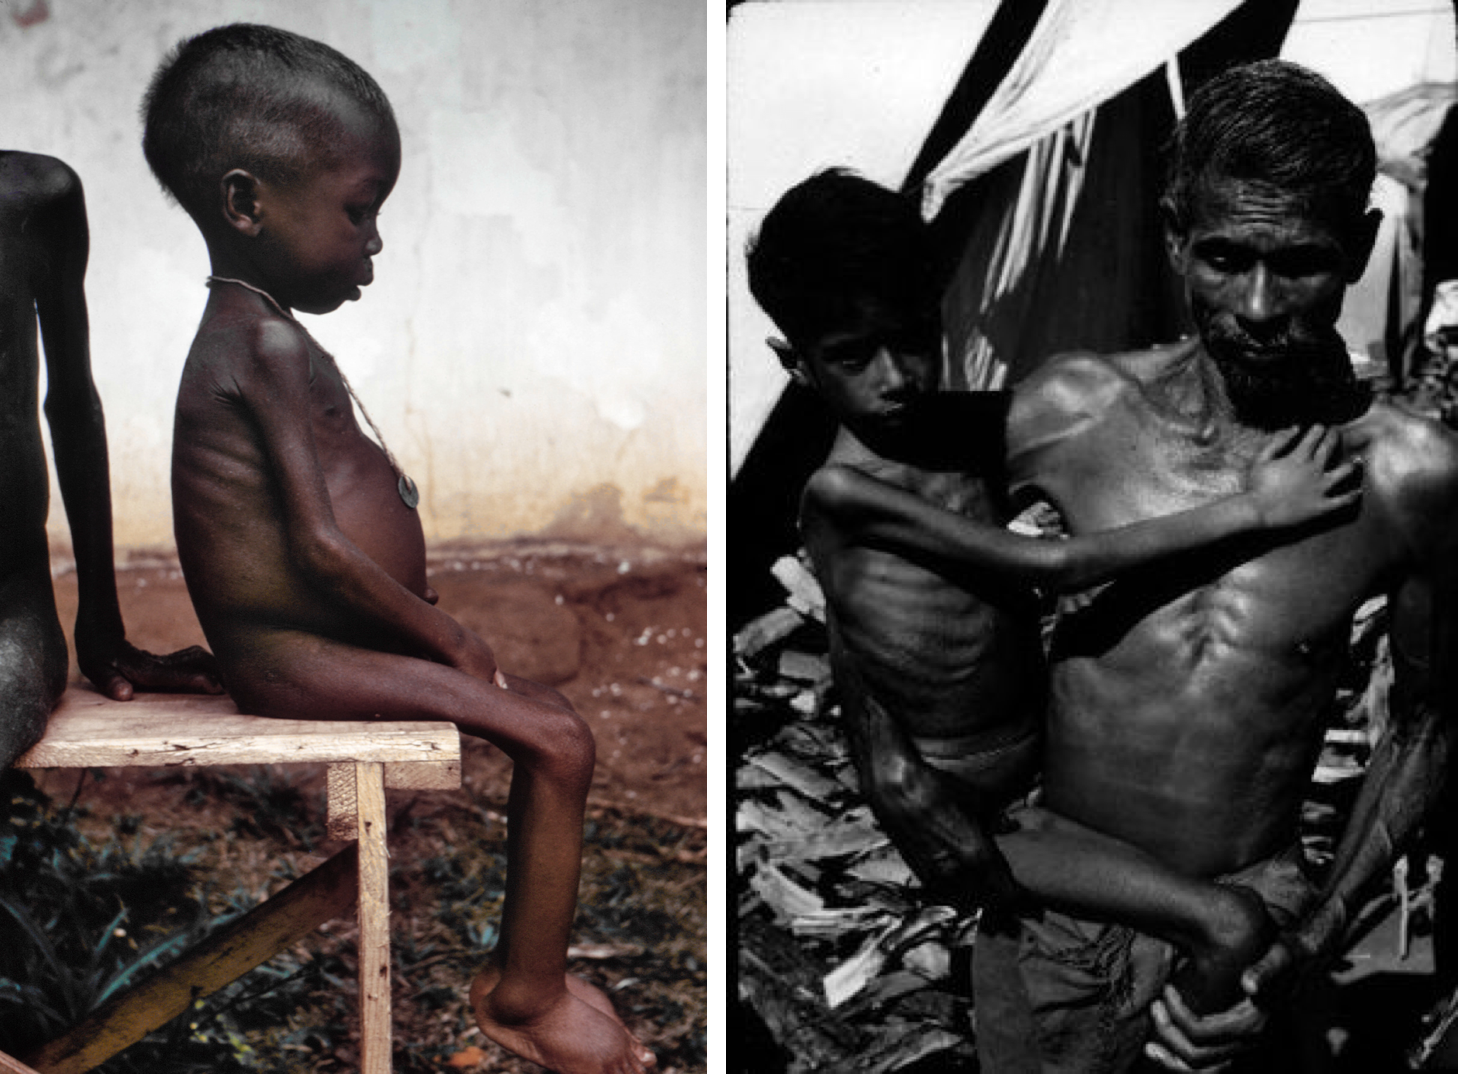 Two photos show children suffering from protein energy malnutrition. On the left is a child with kwashiorkor, showing the hallmark swollen belly. On the right is a child with marasmus, showing very thin limbs and visible ribs, no swollen belly.